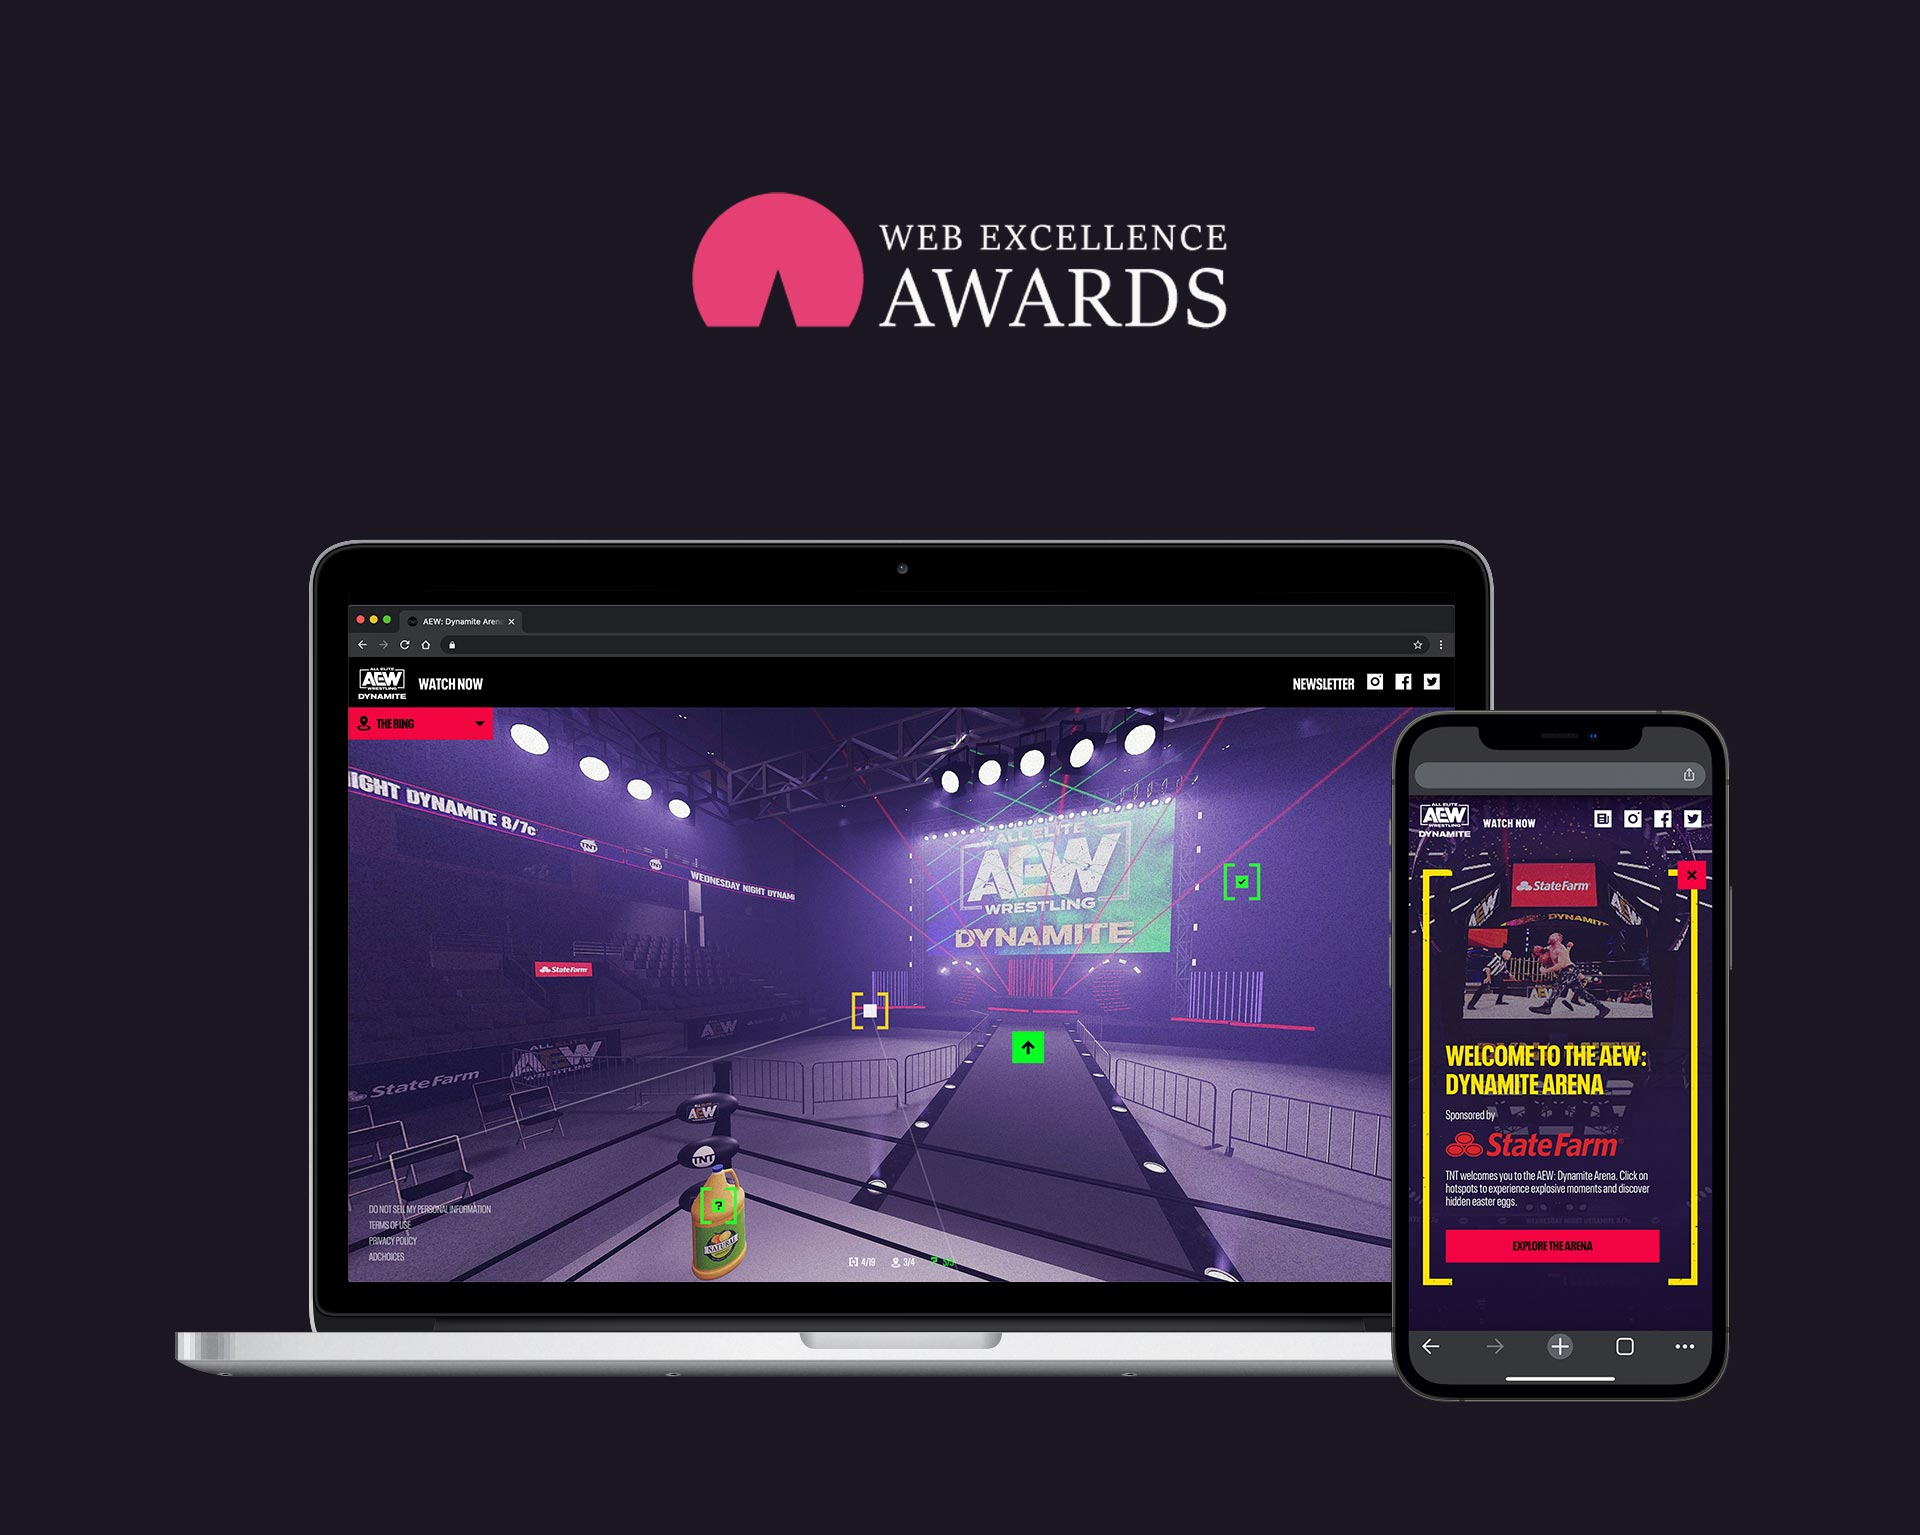 Winner of the 2021 Web Excellence Award in web entertainment. Laptop and phone devices showcase the AEW arena, laser lighting and clickable points of interest floating around the user in 3D space.